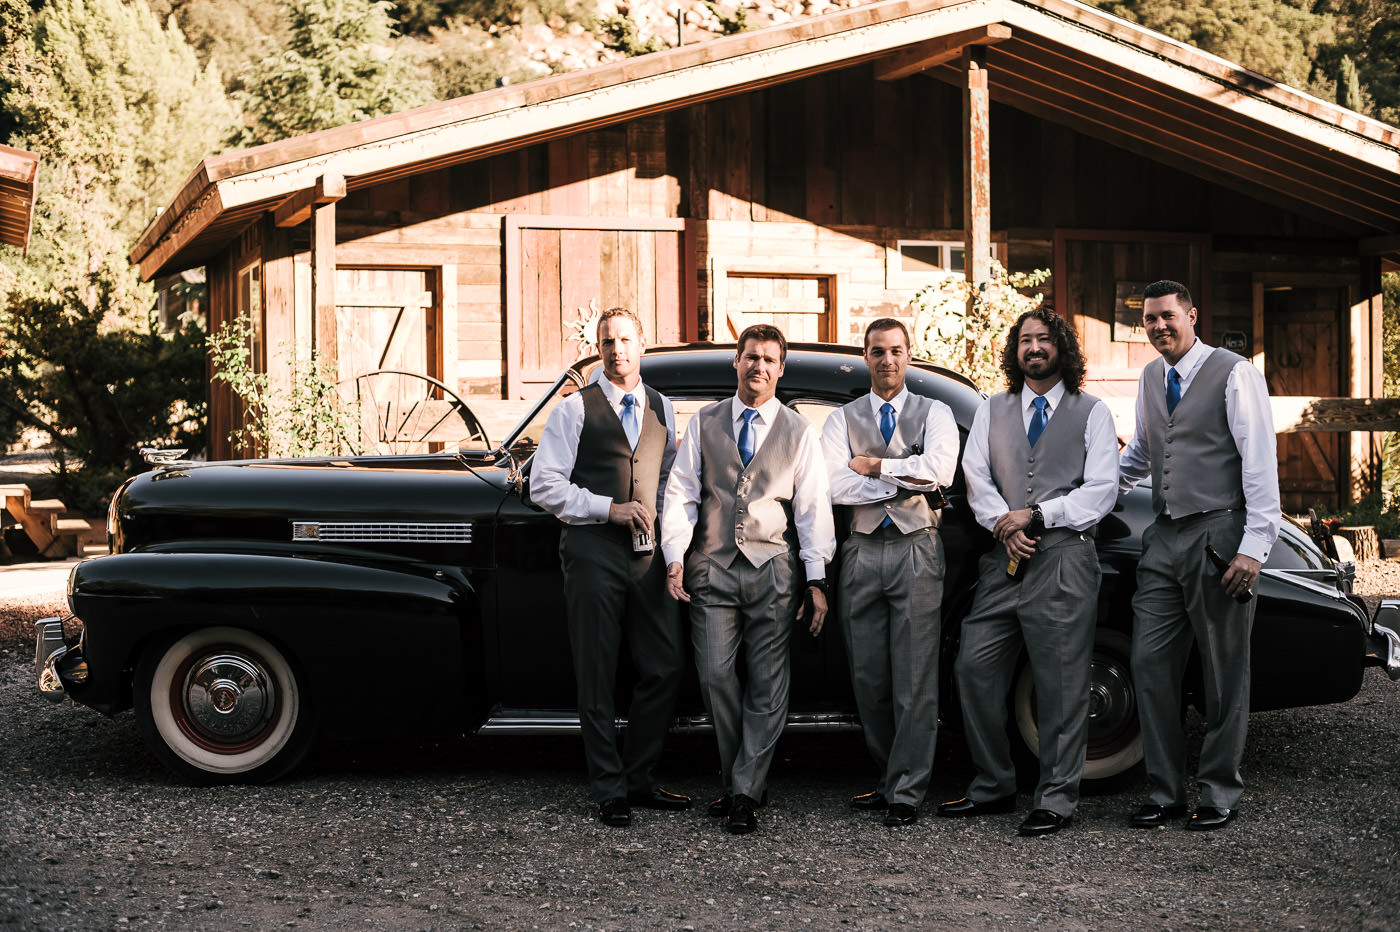 groom poses with his groommen next to a classic car at the rustic whispering oaks terrace in temecula california